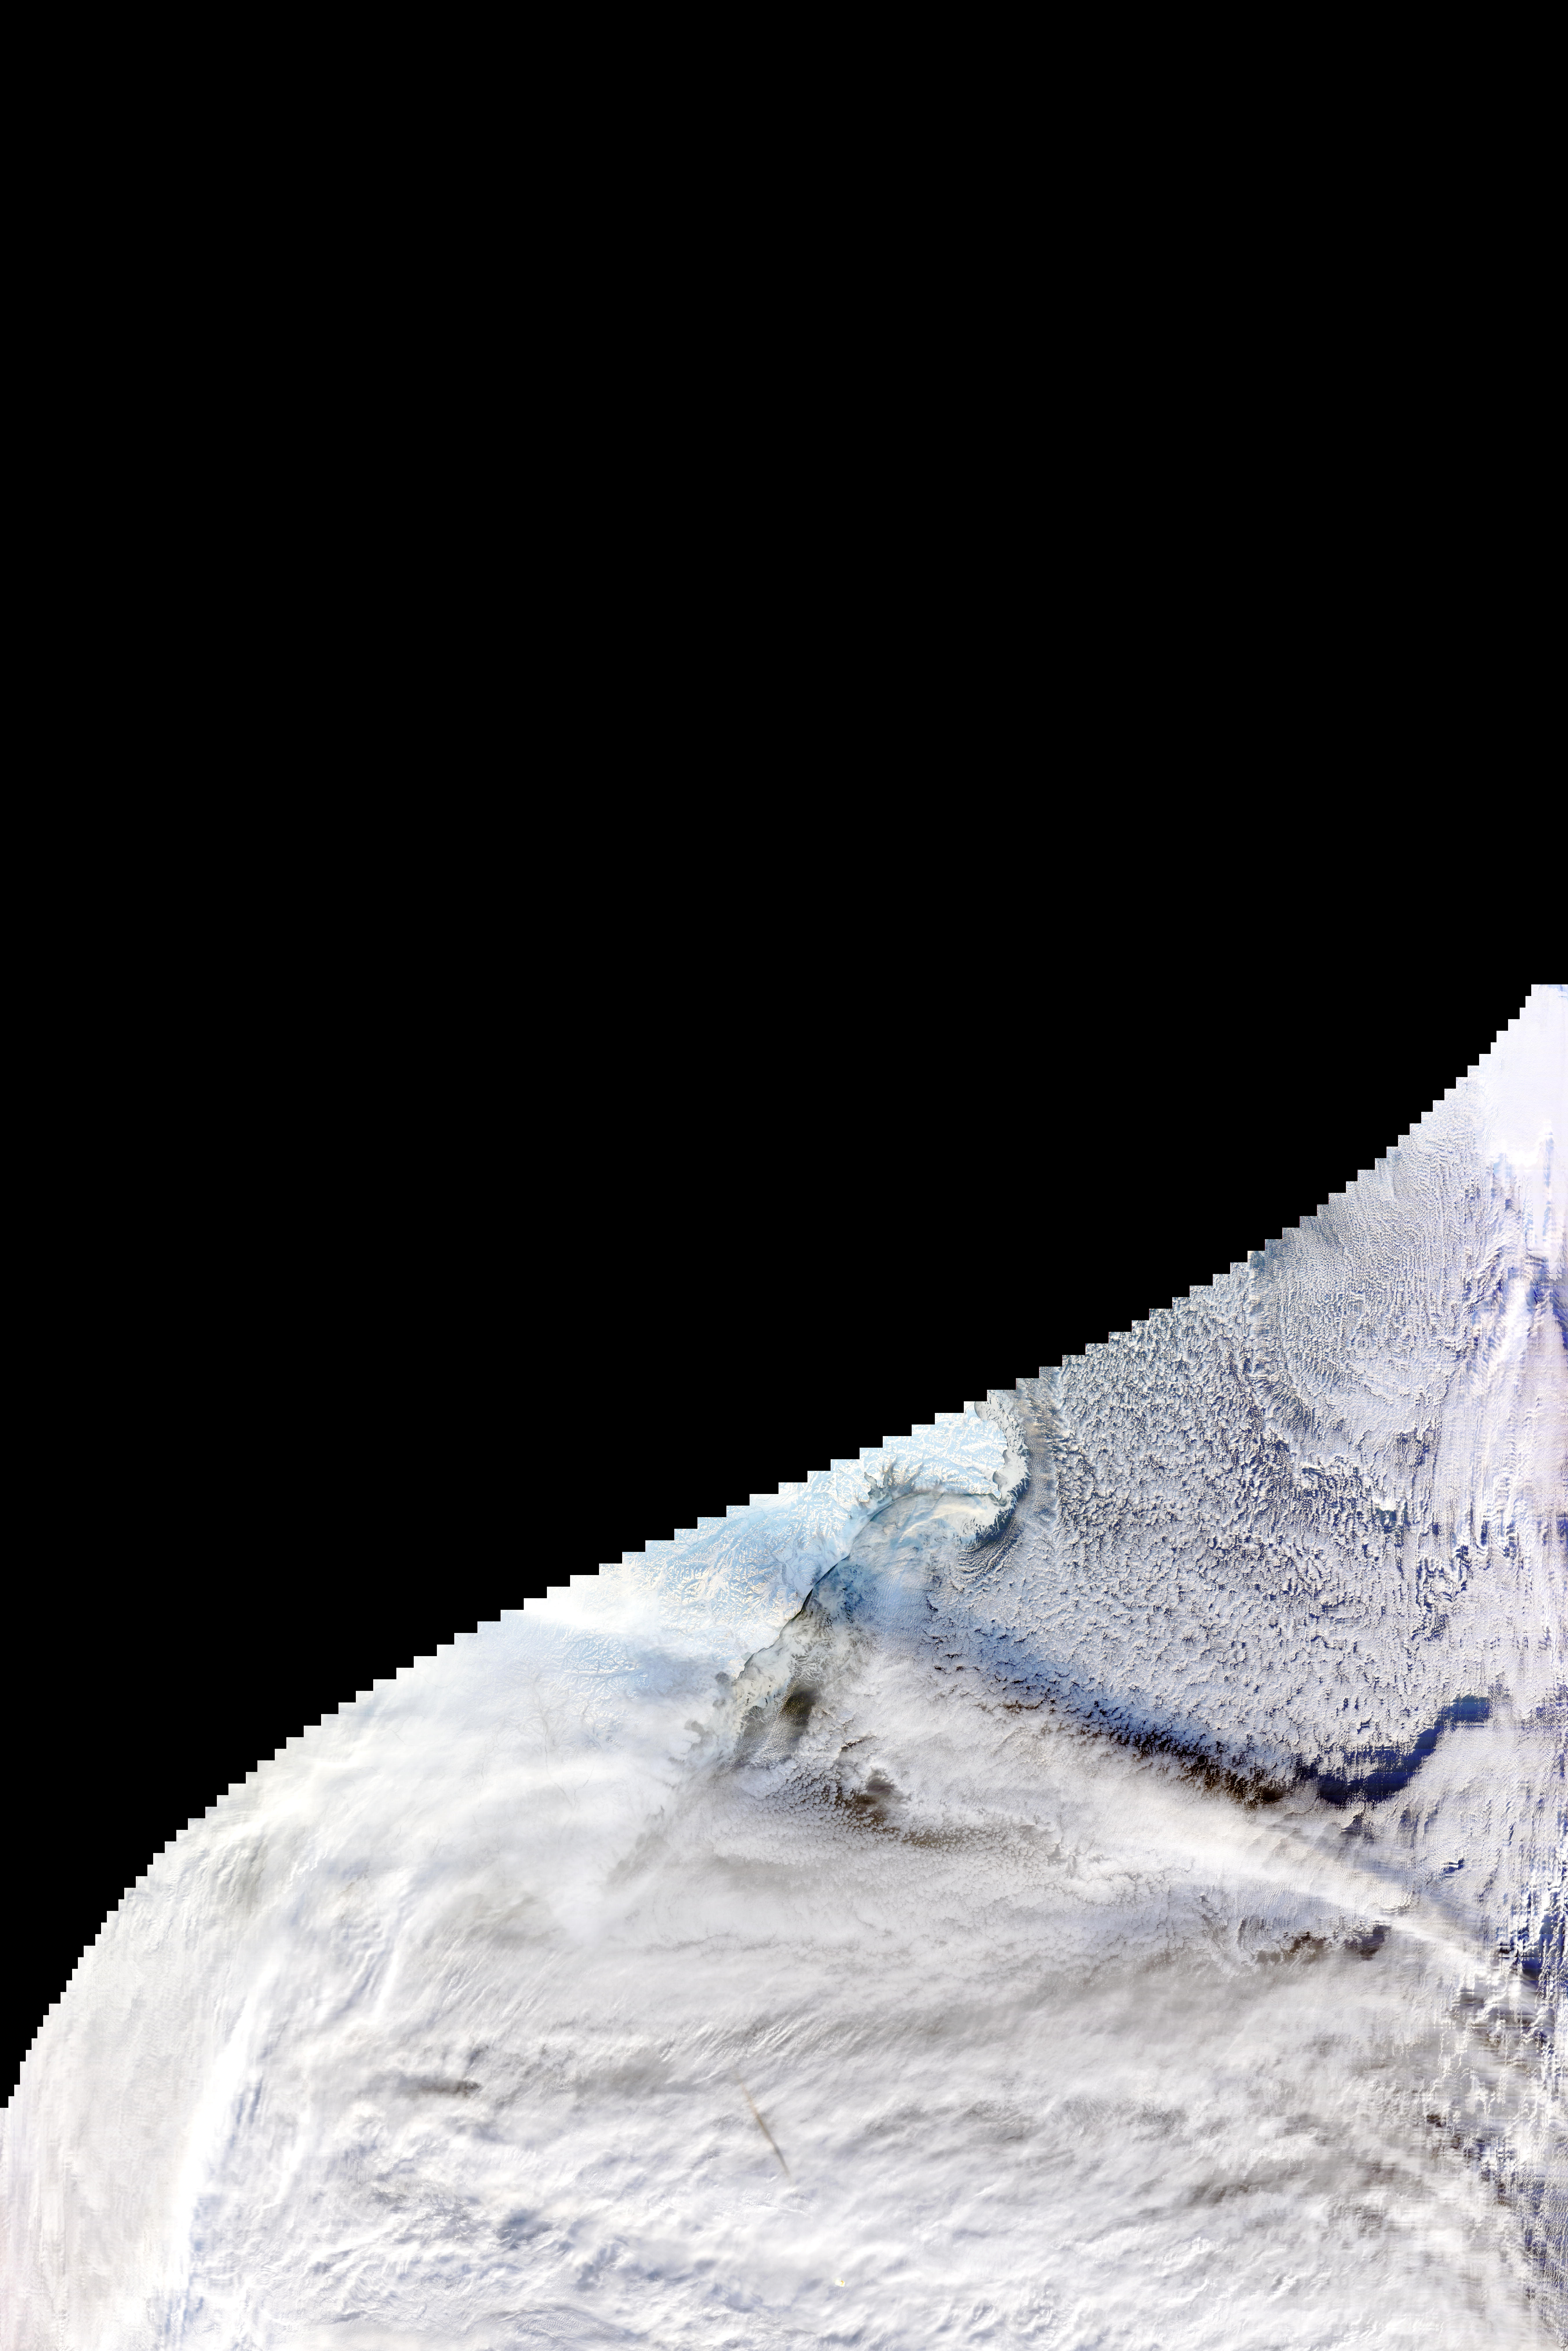 Image of Terra/MODIS 2018/352 23:50 UTC, Bands 1-4-3 (true color), Pixel size 250m